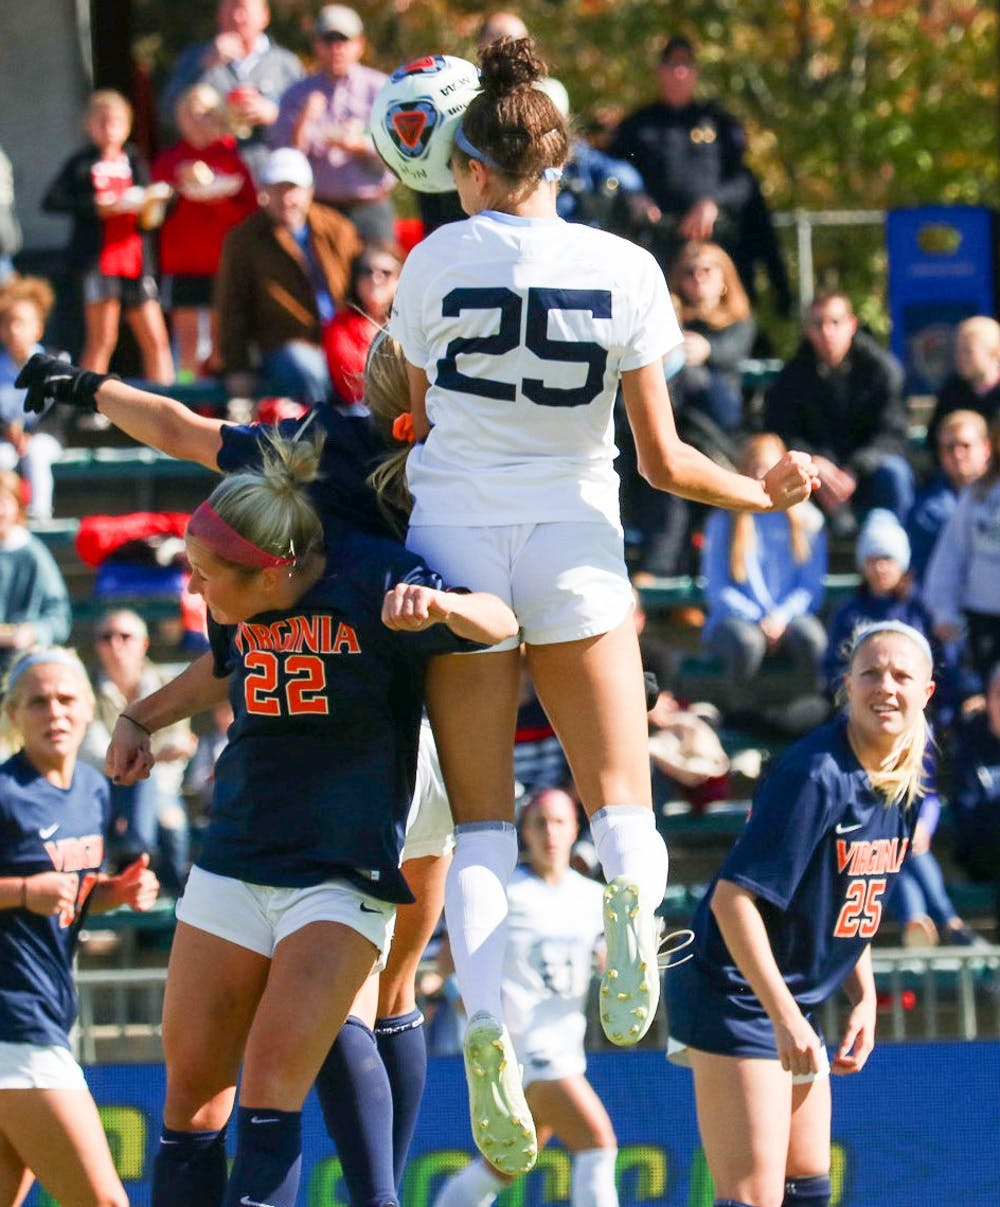 First-year Maycee Bell helps UNC defeat top-ranked Virginia in ACC championship